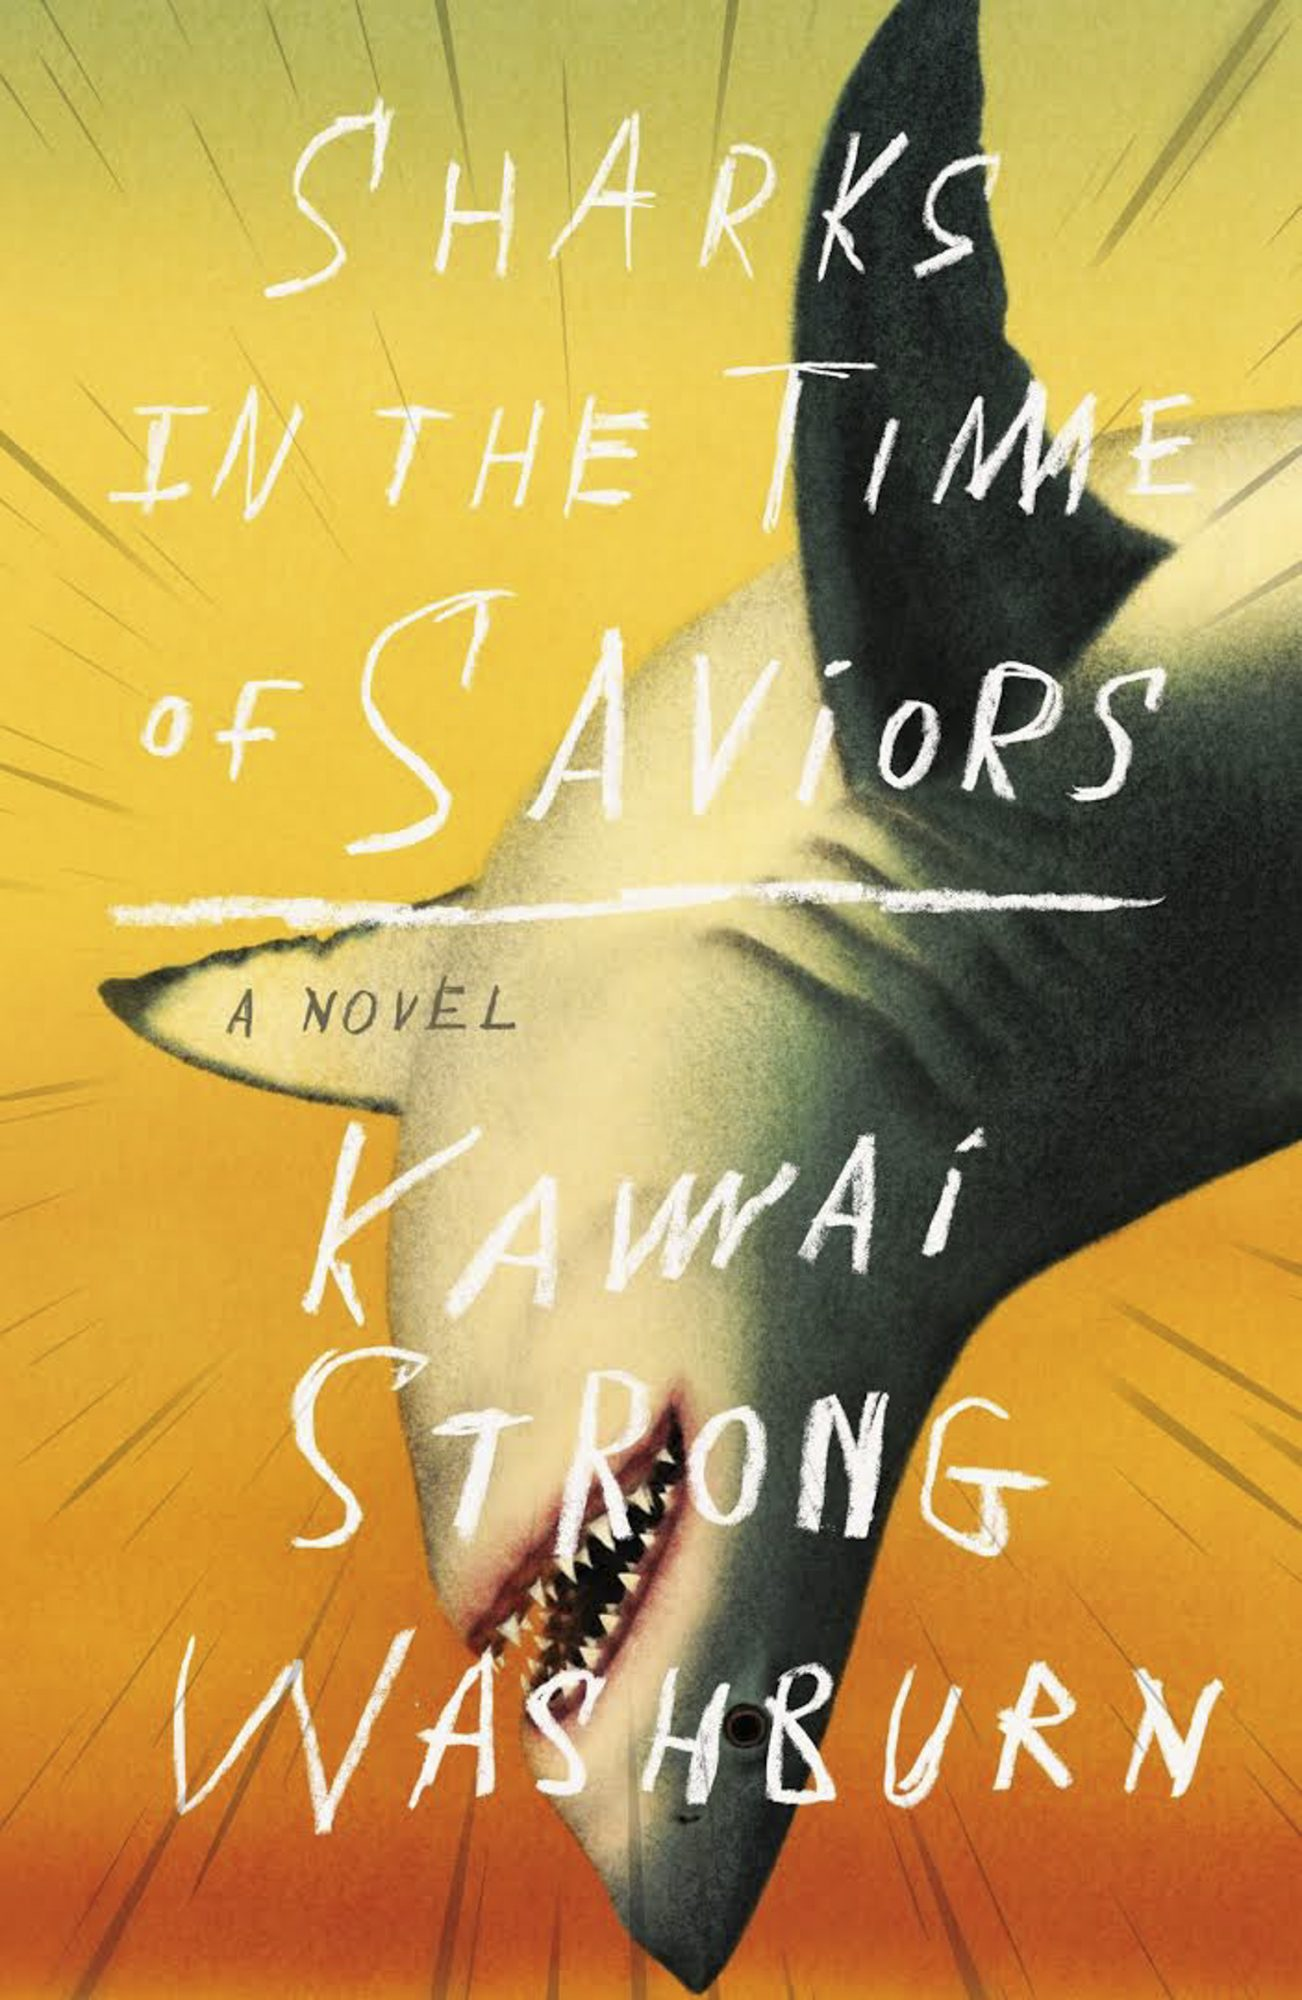 Sharks in the Time of Saviors by Kawai Strong Washburn CR: Farrar, Straus and Giroux